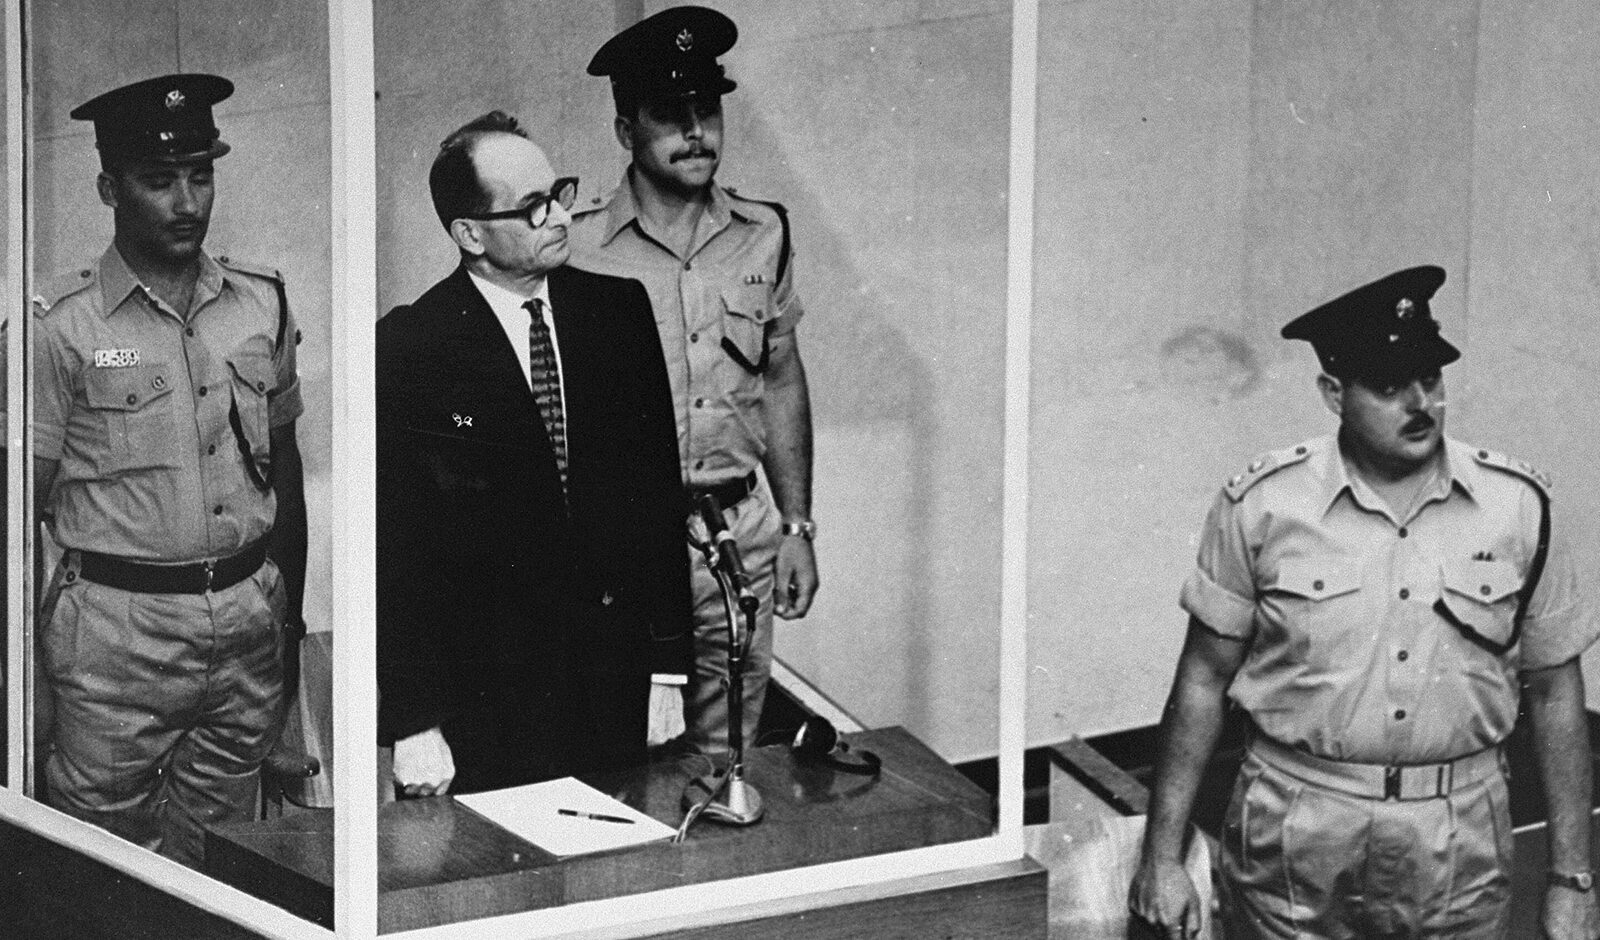 Adolf Eichmann at his 1961 trial for war crimes. (Photo/United States Holocaust Memorial Museum)